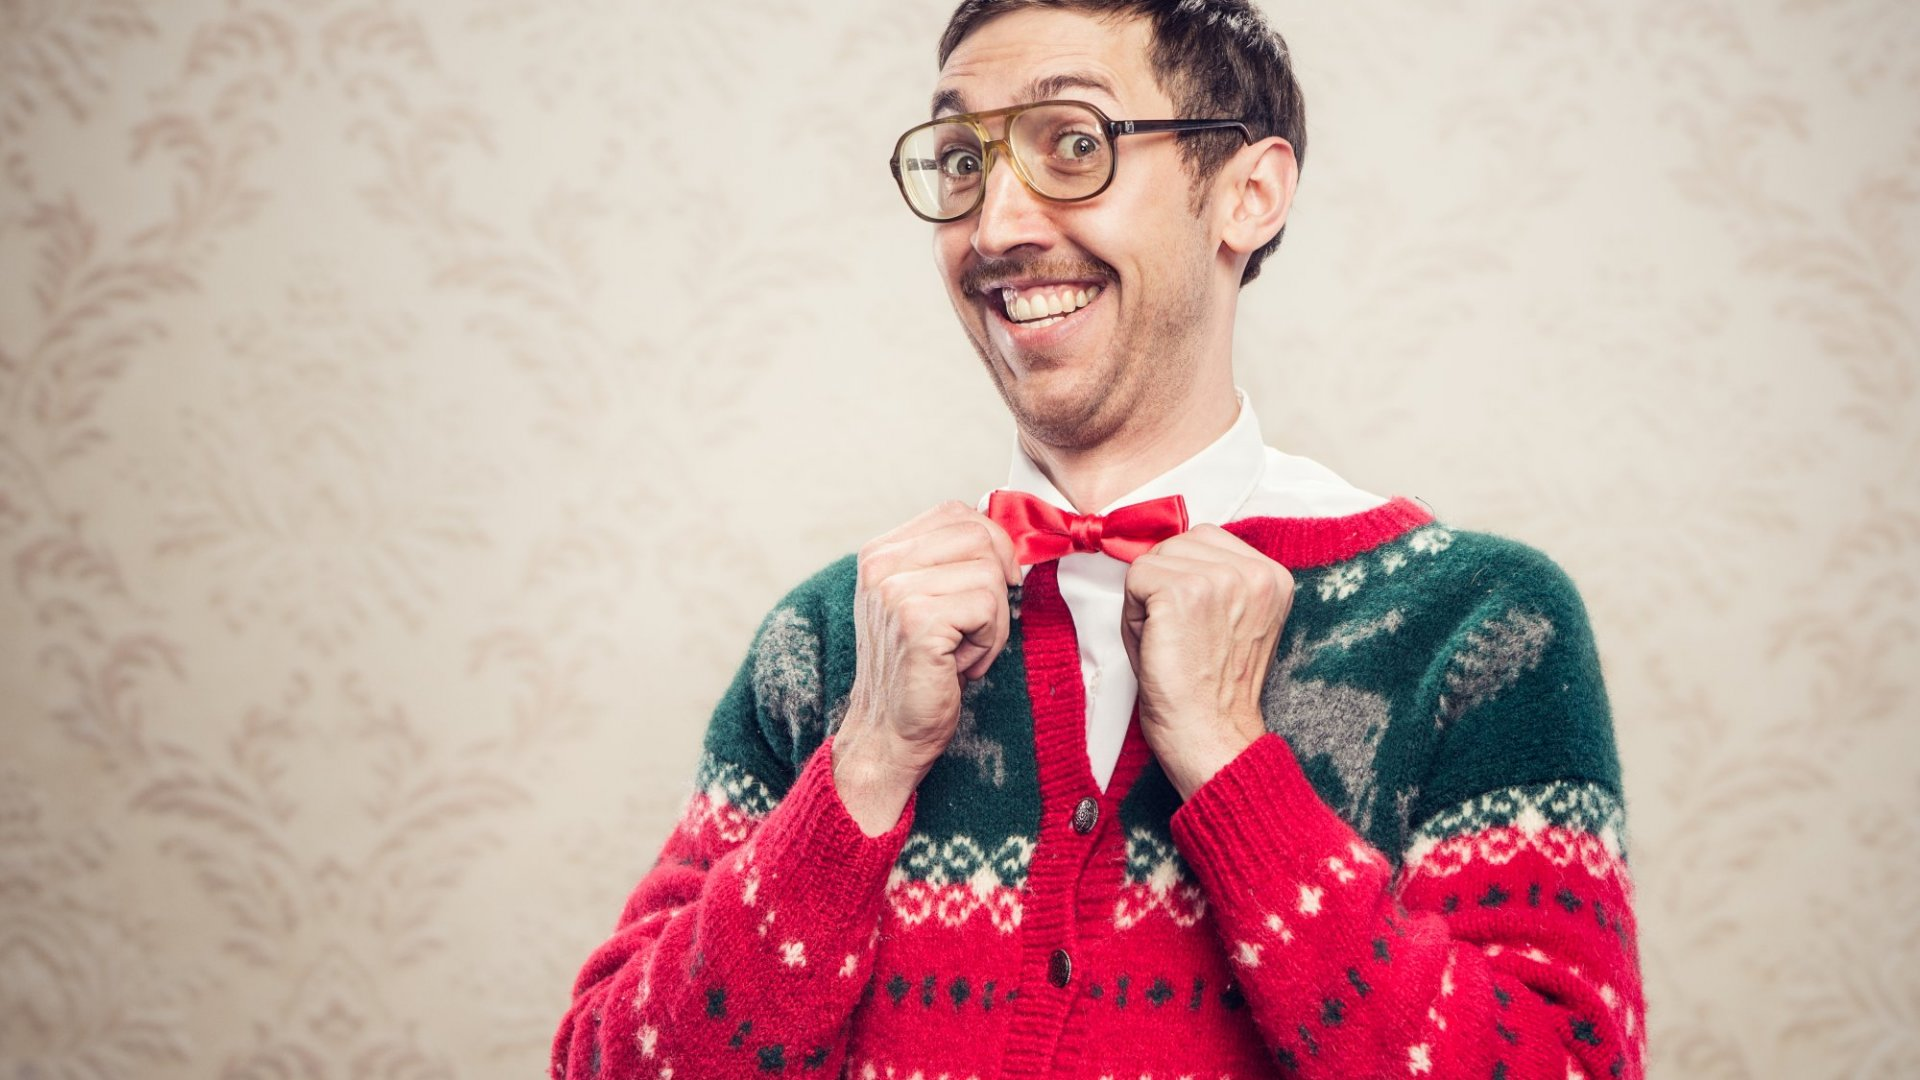 3 Tips for Keeping Your Relationships Intact This Holiday Season